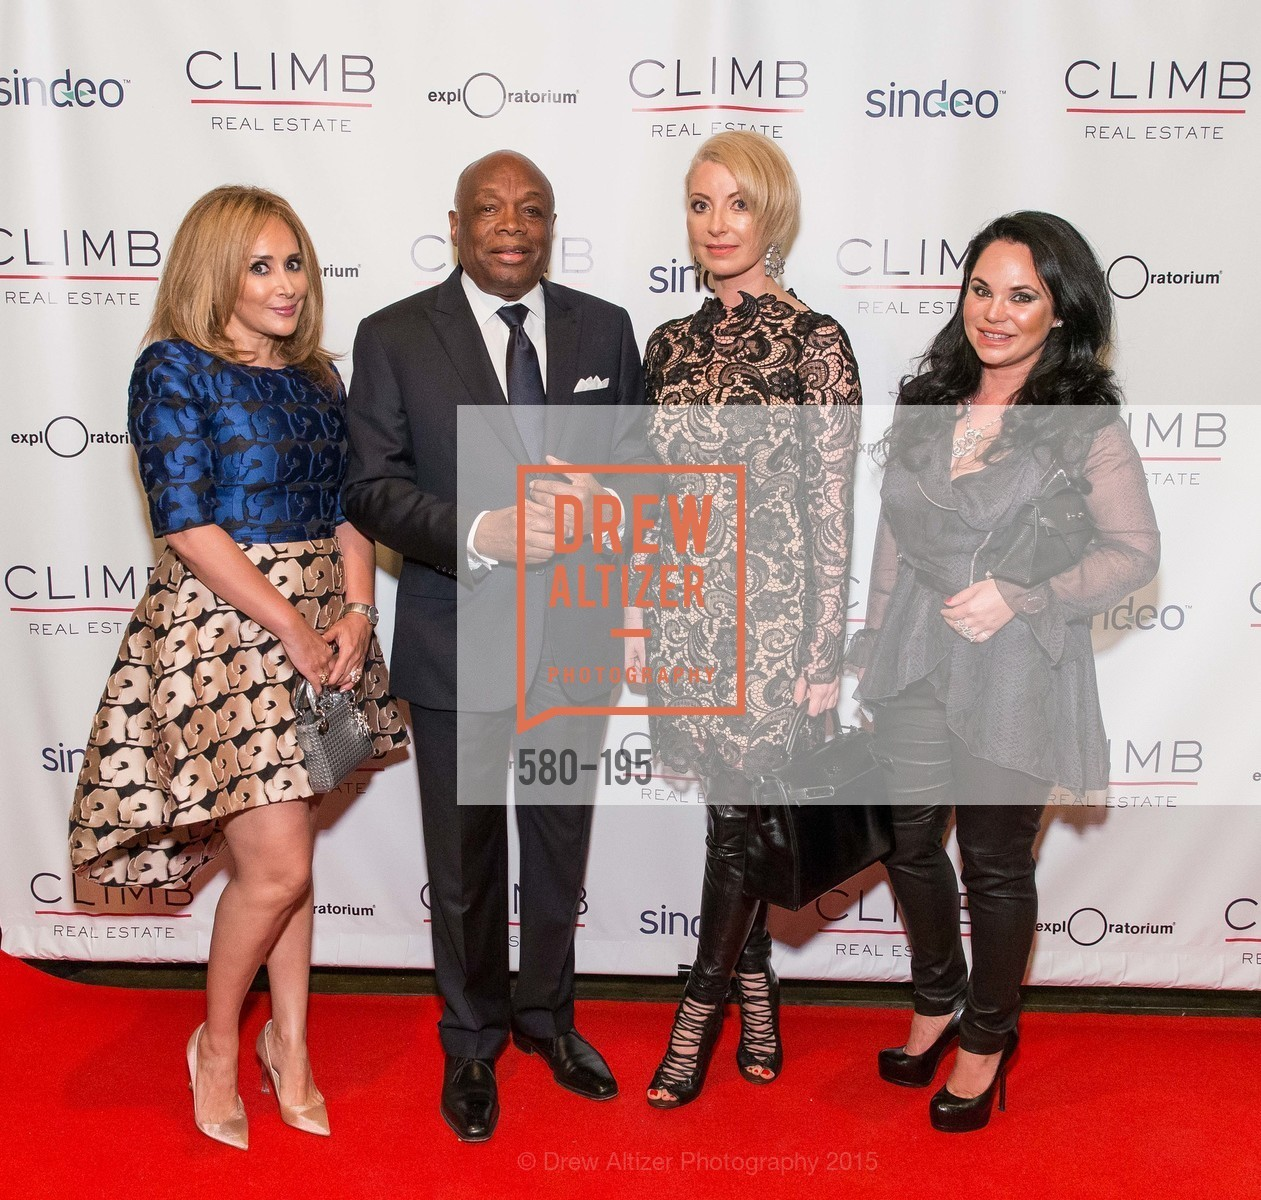 Brenda Zarate, Willie Brown, Sonya Molodetskaya, Rada Katz, Climb Real Estate and Sindeo Celebrate the Launch of Million Dollar Listing San Francisco, Local Edition San Francisco. 691 Market St, July 8th, 2015,Drew Altizer, Drew Altizer Photography, full-service agency, private events, San Francisco photographer, photographer california